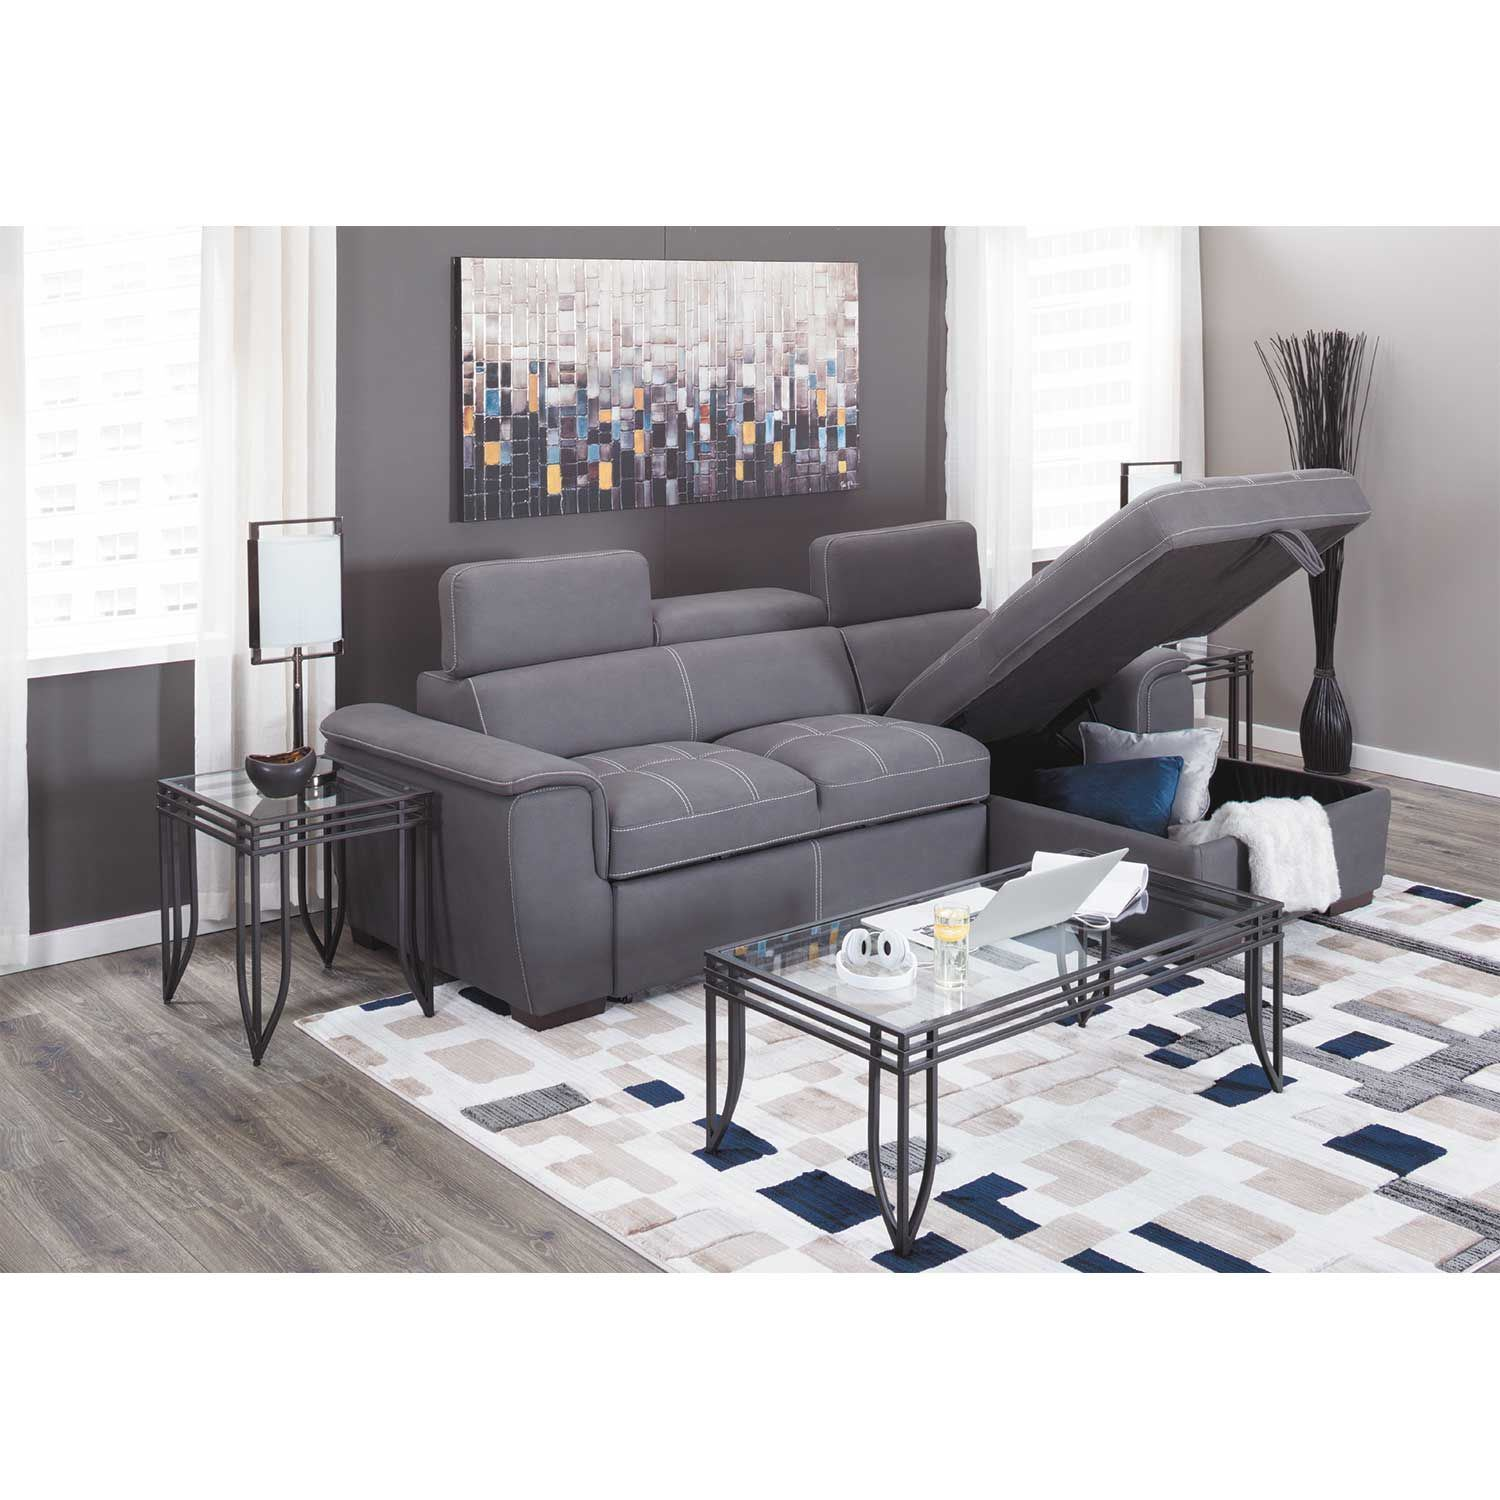 Picture of Levi 2 Piece Sectional with Pull Out Bed